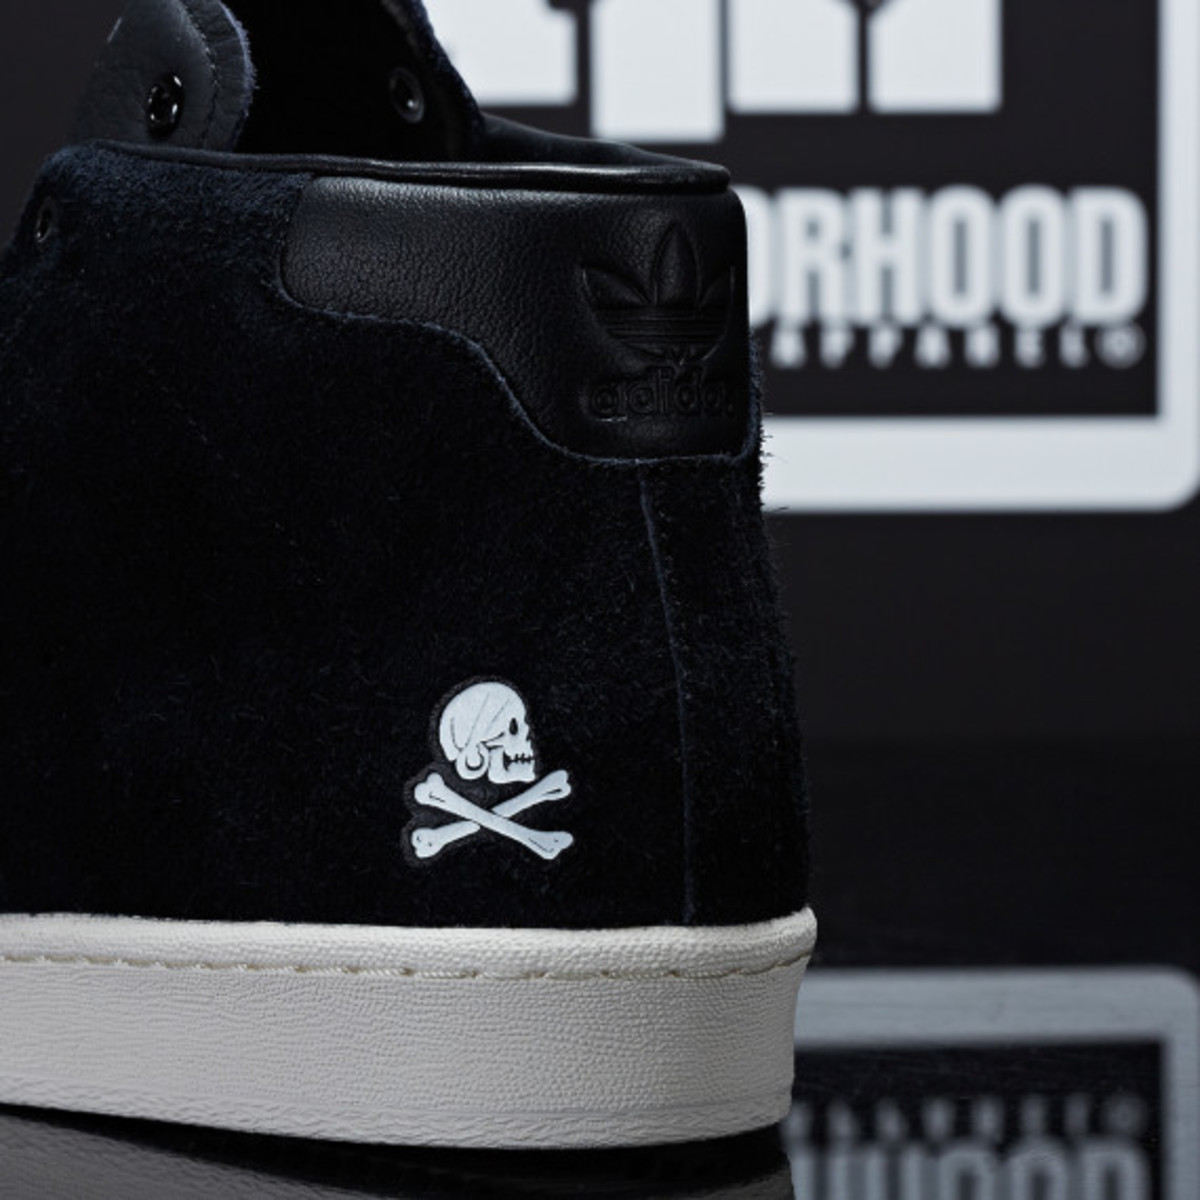 UNDEFEATED x NEIGHBORHOOD x adidas Consortium | Release Info - 20